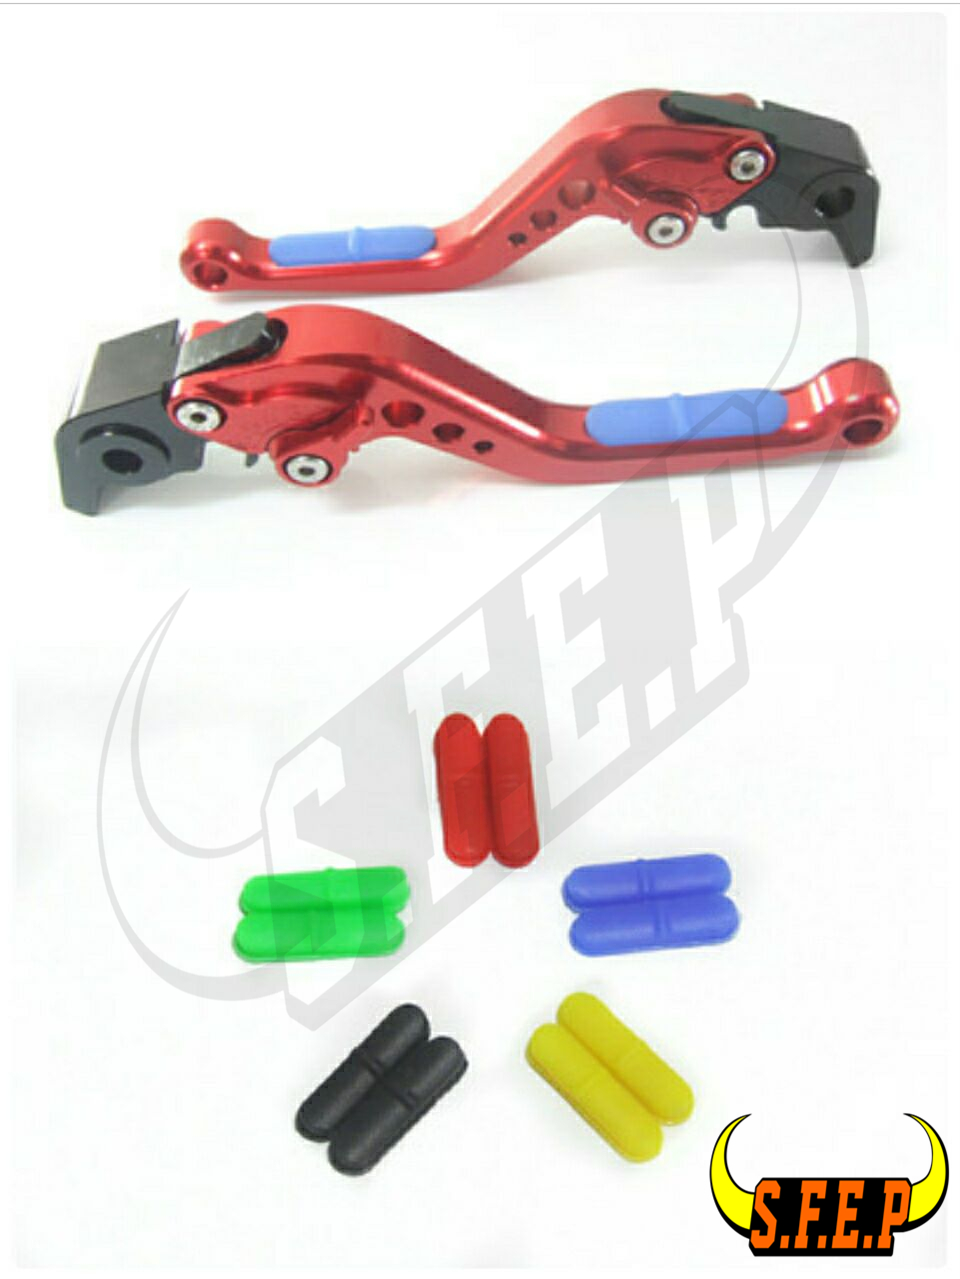 CNC Adjustable Motorcycle Brake and Clutch Levers with Anti-Slip For Honda NC700 S/X 2012-2013 motorcycle adjustable cnc aluminum brakes clutch levers set motorbike brake for ktm 690 smc smc r duke duke r 2012 2013